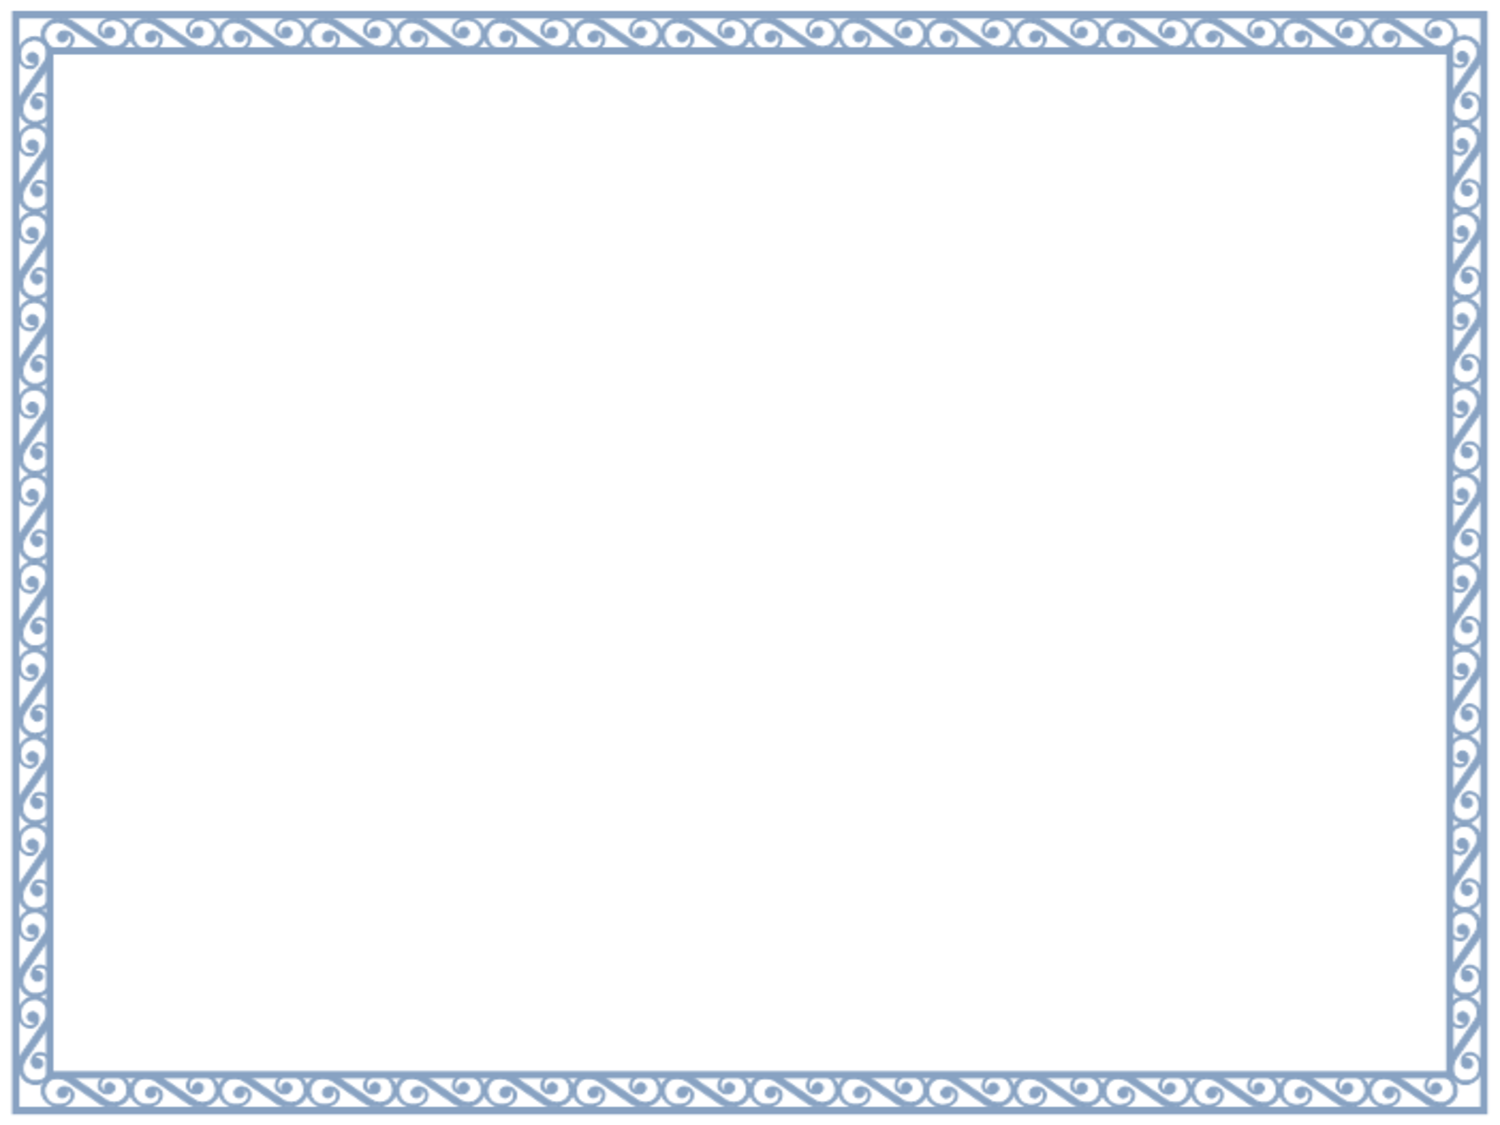 Free Printable Blank Certificate Borders - ClipArt Best